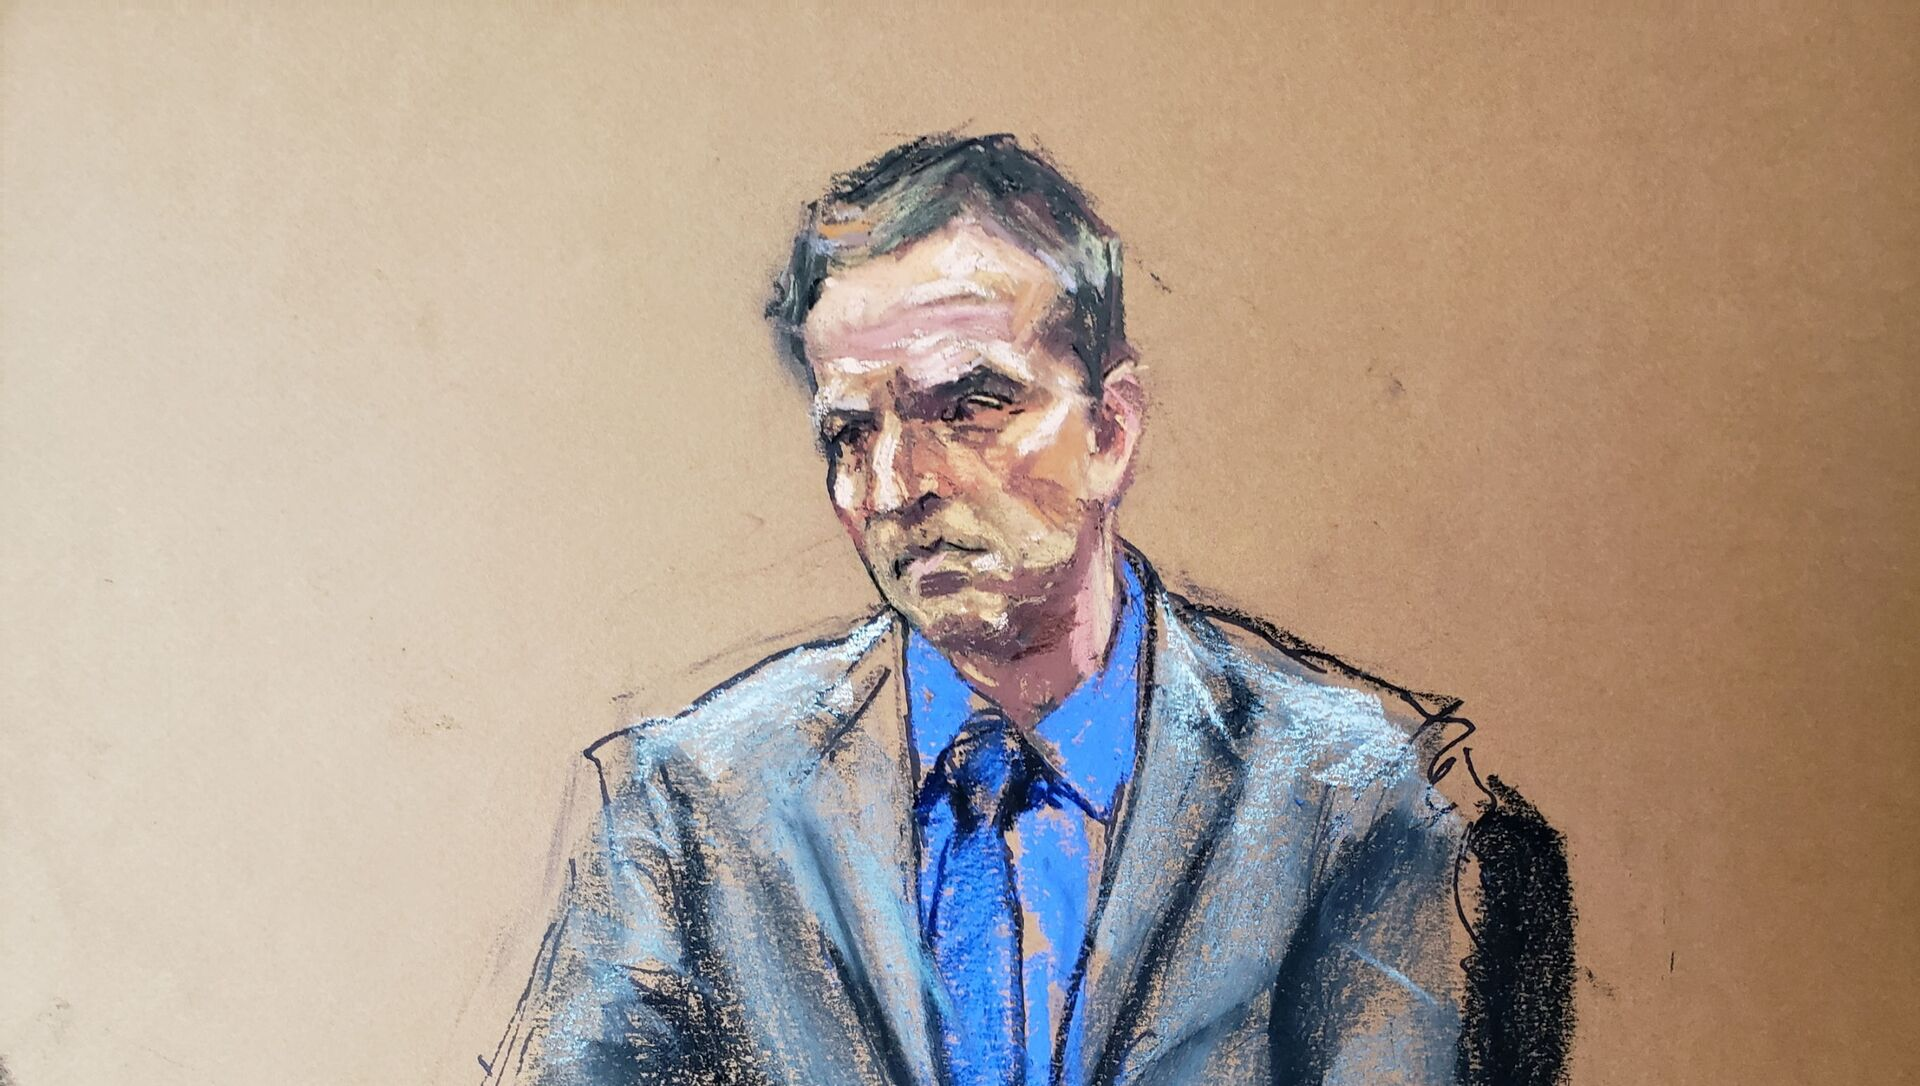 Former Minneapolis police officer Derek Chauvin listens as defence attorney Eric Nelson makes closing arguments during the trial of Chauvin for second-degree murder, third-degree murder and second-degree manslaughter in the death of George Floyd in Minneapolis, Minnesota, U.S. April 19, 2021 in this courtroom sketch.  - Sputnik Italia, 1920, 20.04.2021